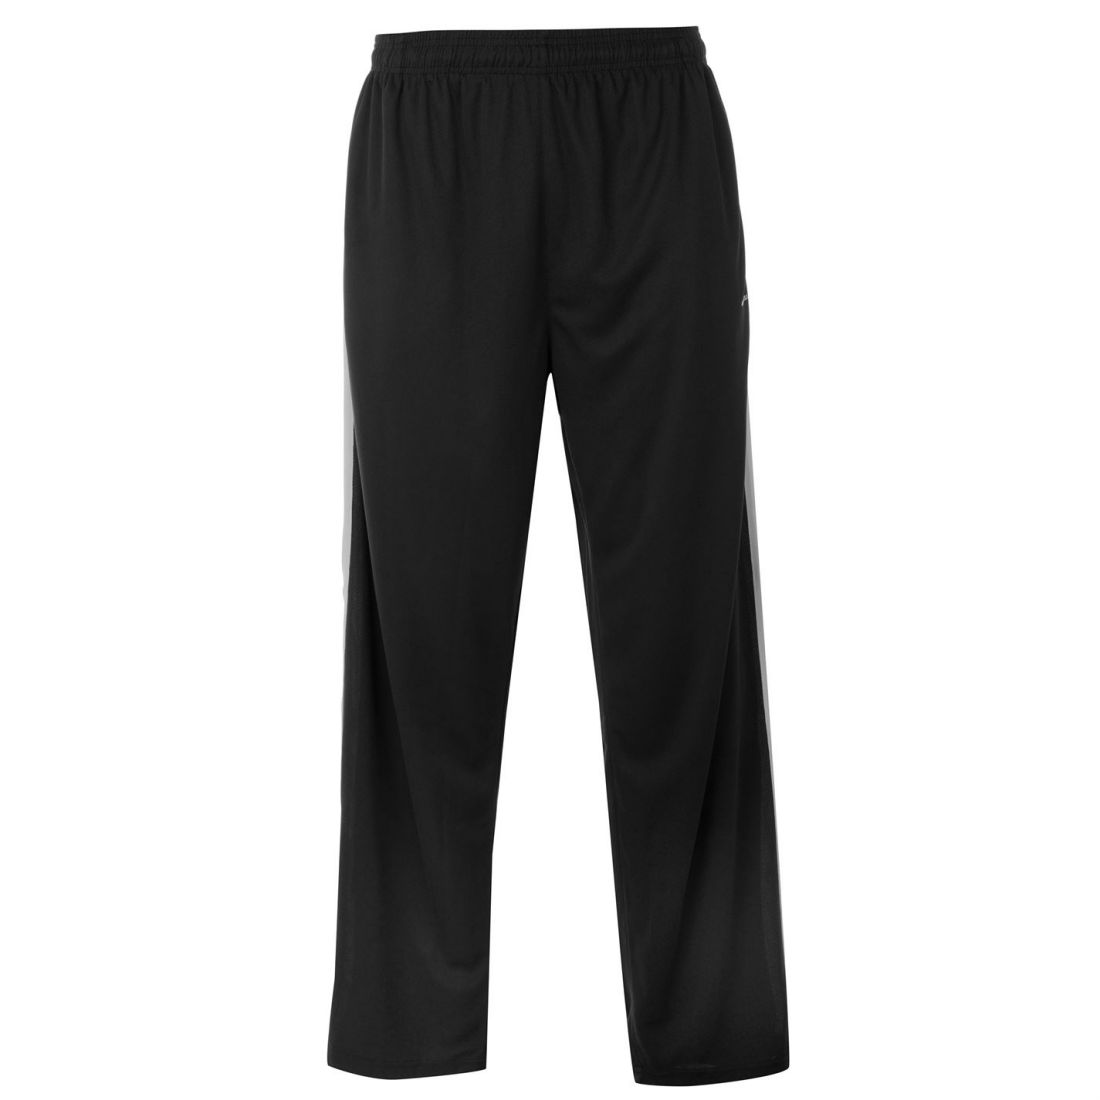 Lonsdale Mens Box Lightweight Sweat Pants Drawstring Elasticated Waist